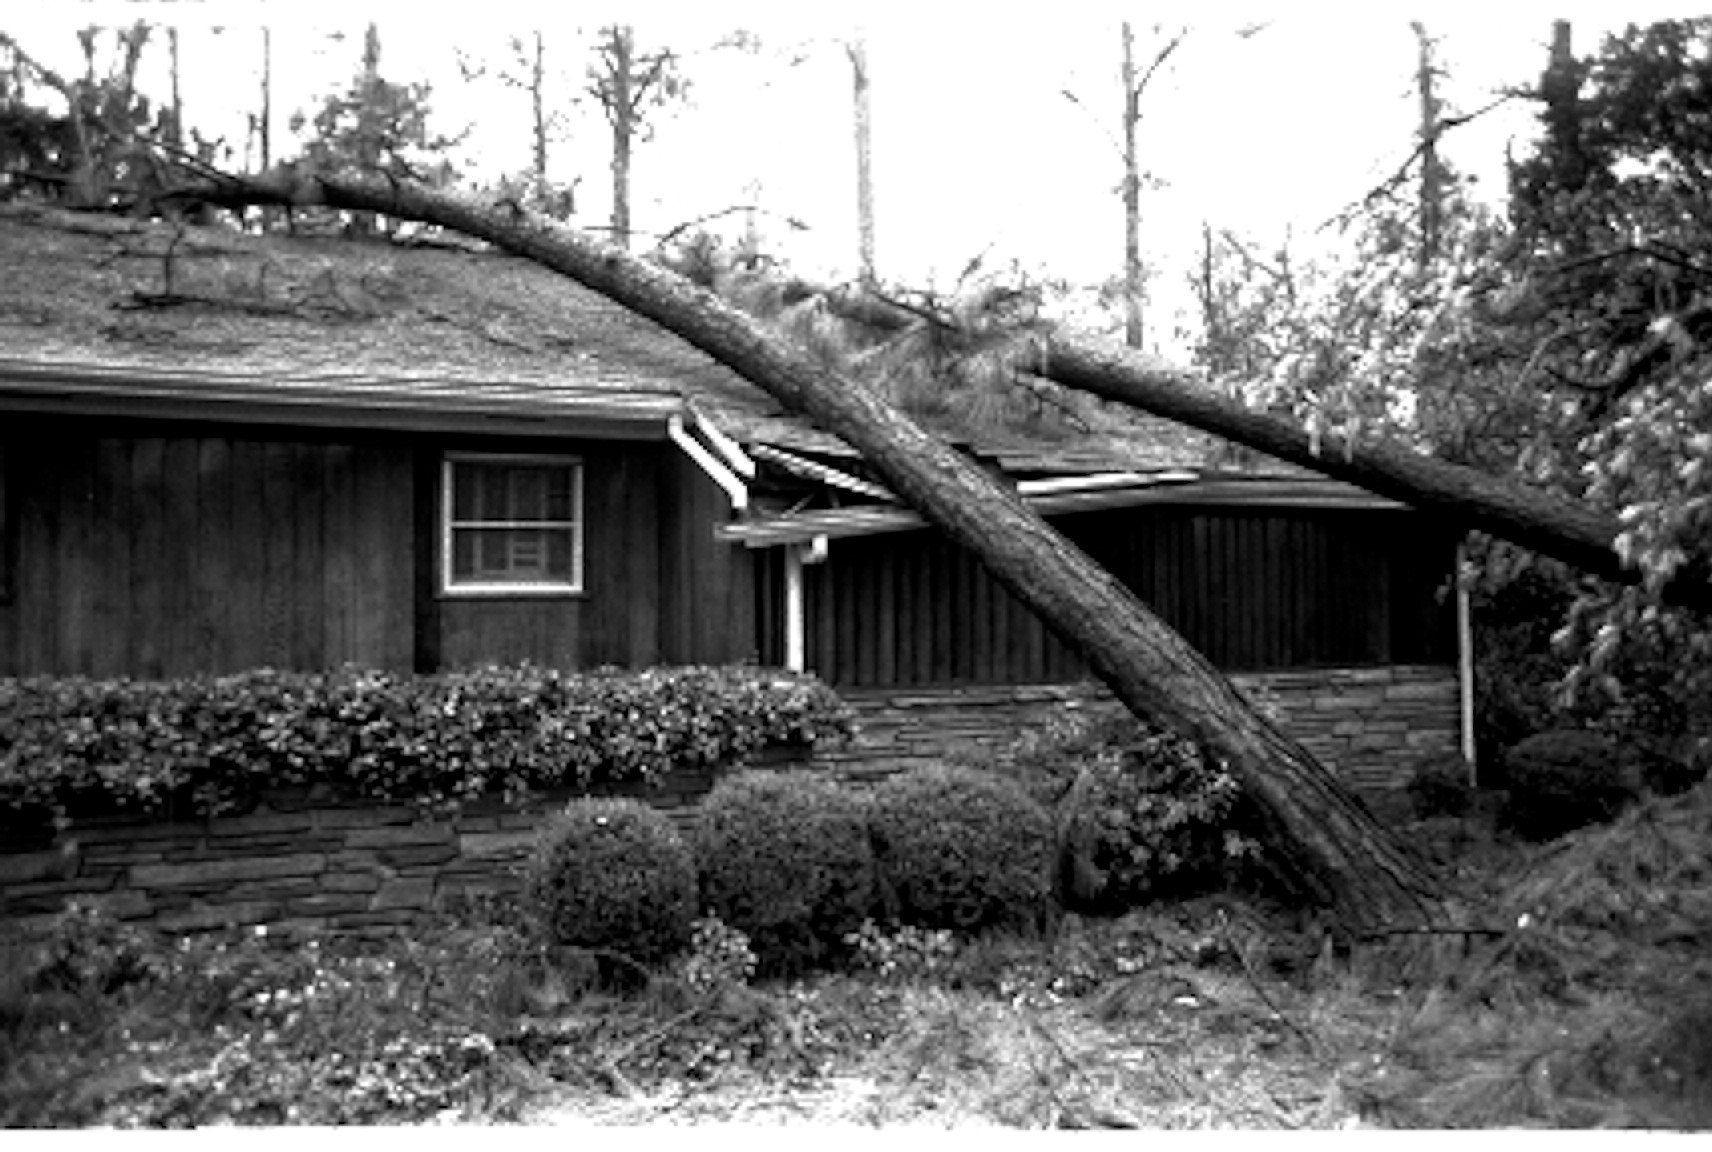 A tree rests on a house after Hurricane Hugo.